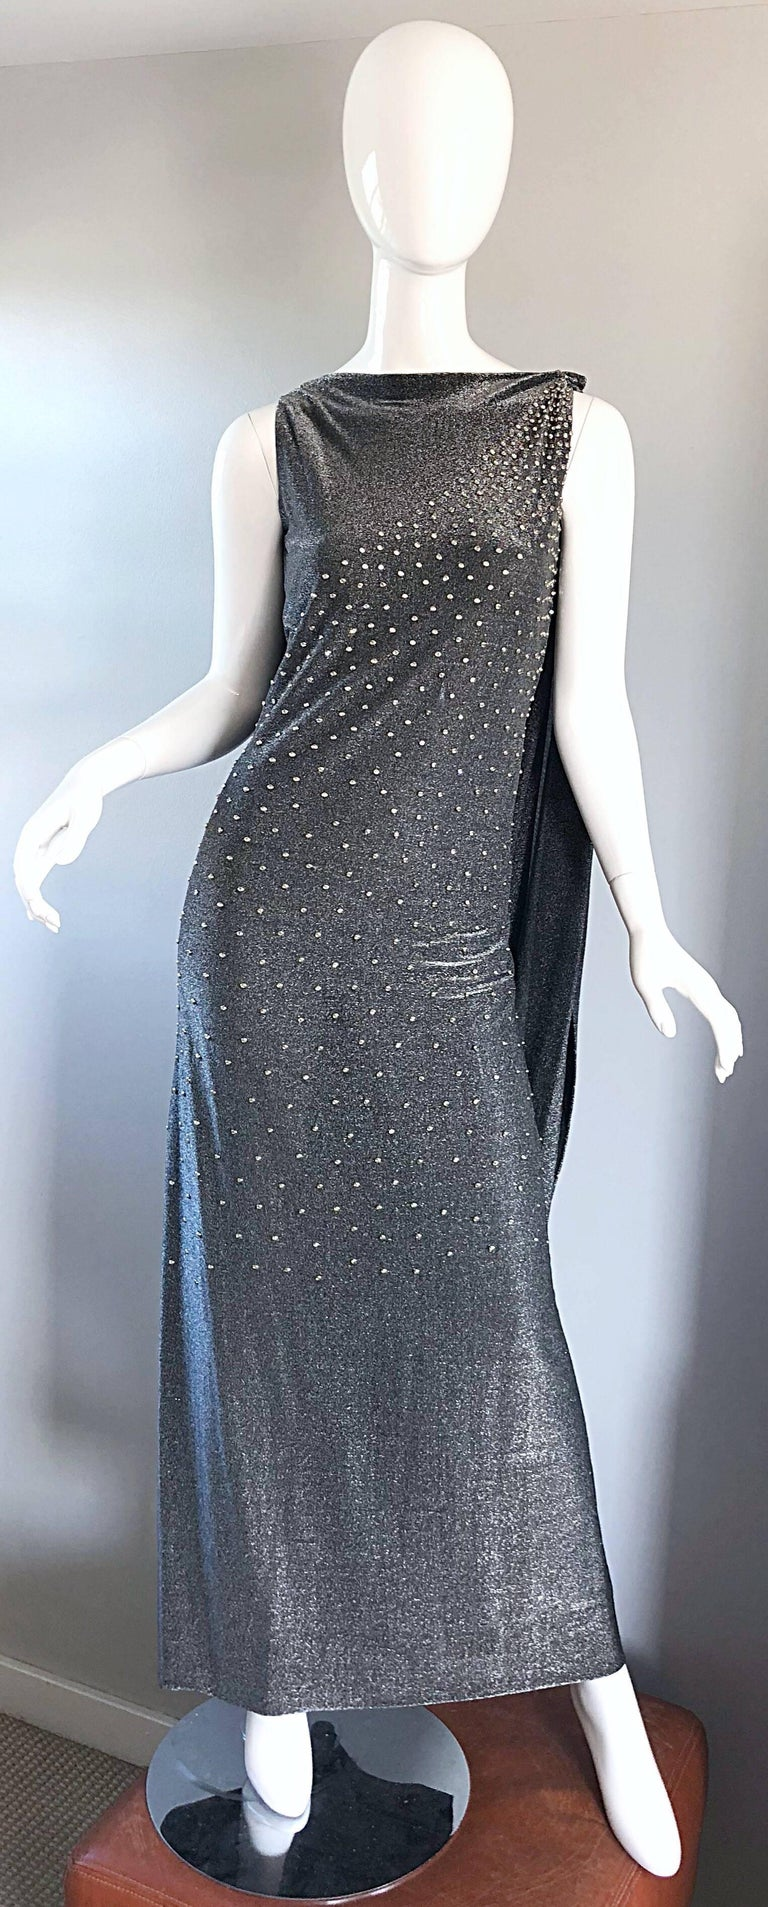 Rare Musuem Worthy 60s GEOFFREY BEENE Couture gunmetal + silver metallic silk lurex caped evening dress! Luxurioussoft (not scratchy at all) silk lurex fabric. Features hundreds of hand-sewn silver metal studs and rhinestones on the front. Attached